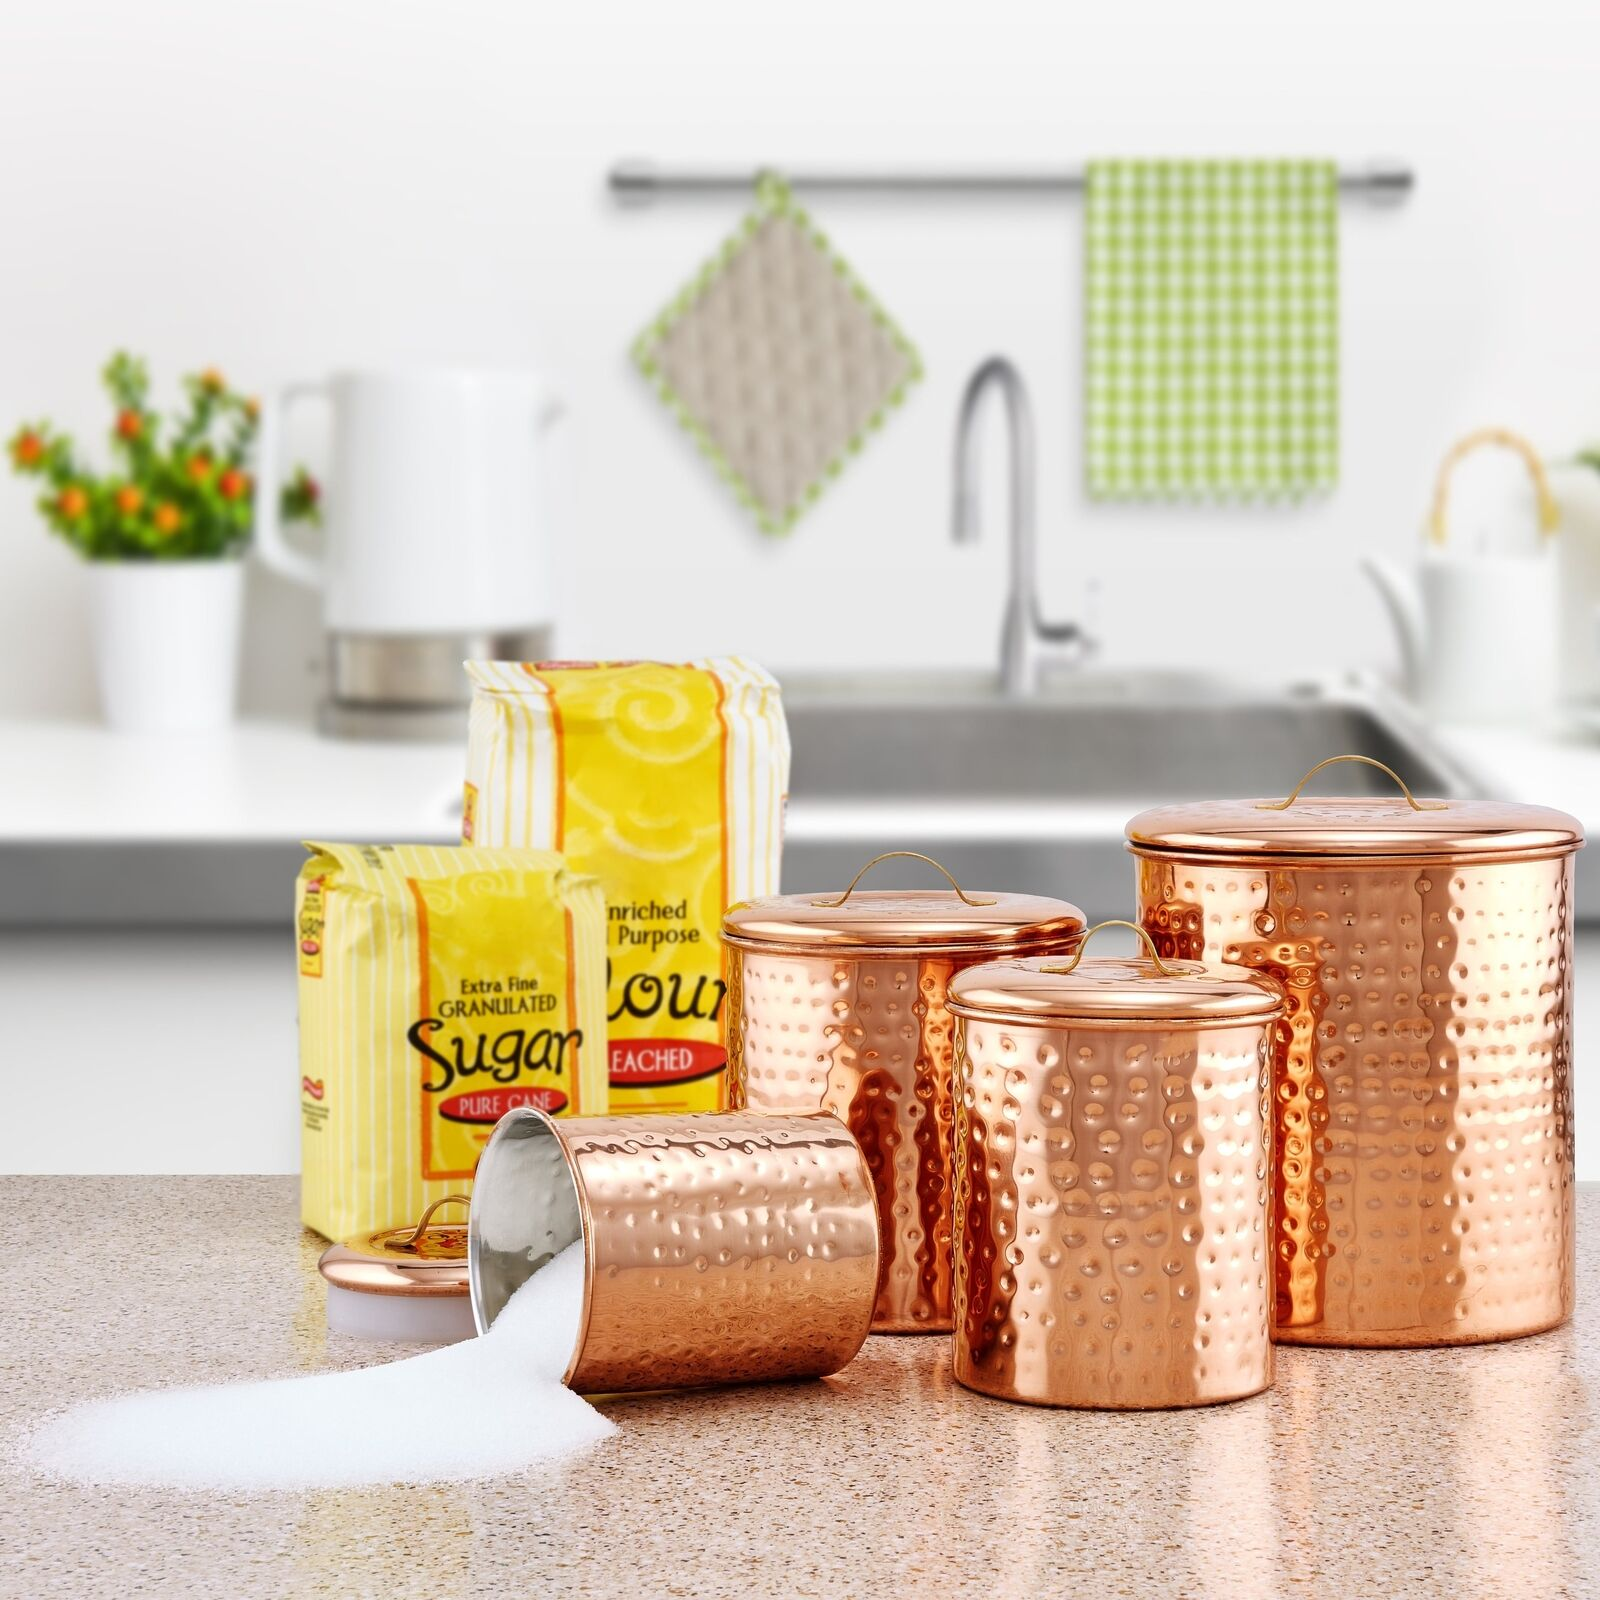 4 PCs Hammerot Copper Canister Canister Canister Set Tea Coffee Sugar Flour Jar Kitchen Storage d56f4f